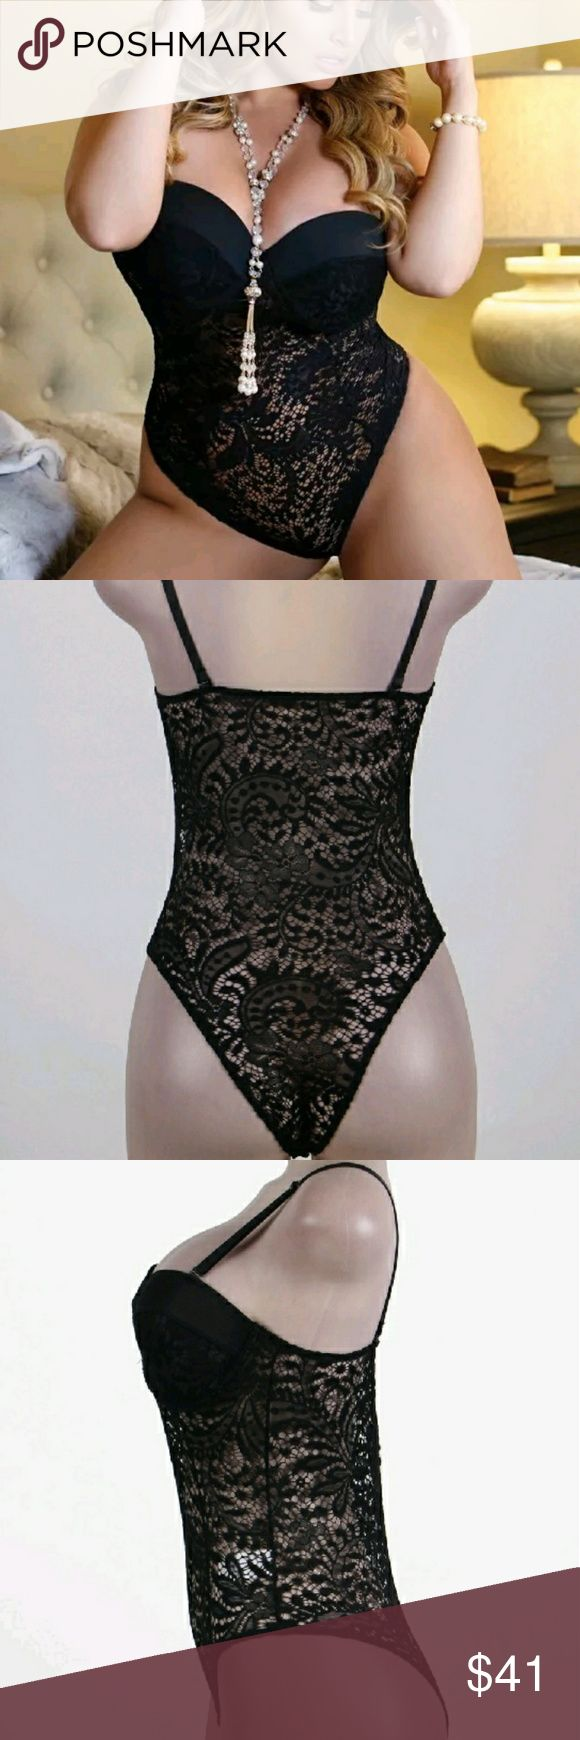 Plus size lingerie 5 x Black lace Bridal Teddy sexy wedding lingerie push-up cup . Intimates & Sleepwear